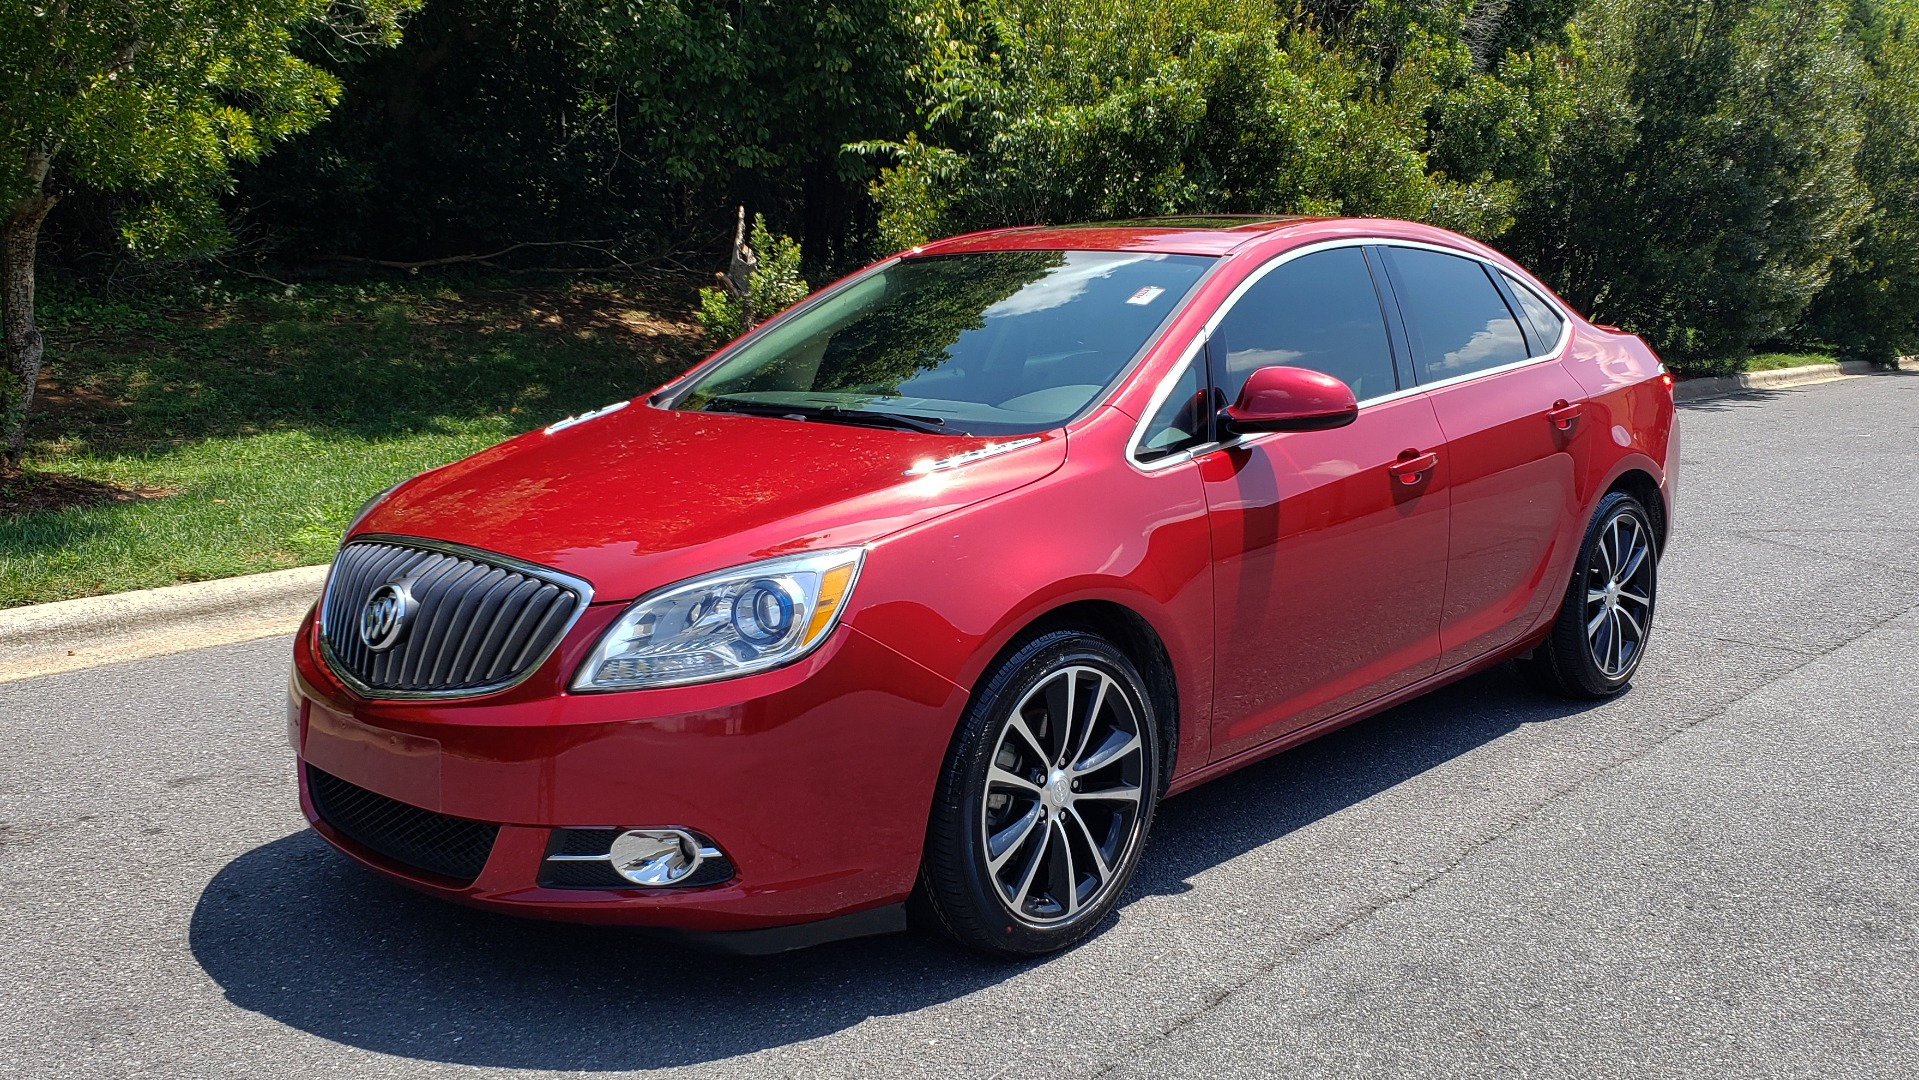 Used 2016 Buick VERANO SPORT TOURING / SUNROOF / HTD STS / 18IN WHEELS / REARVIEW for sale Sold at Formula Imports in Charlotte NC 28227 1